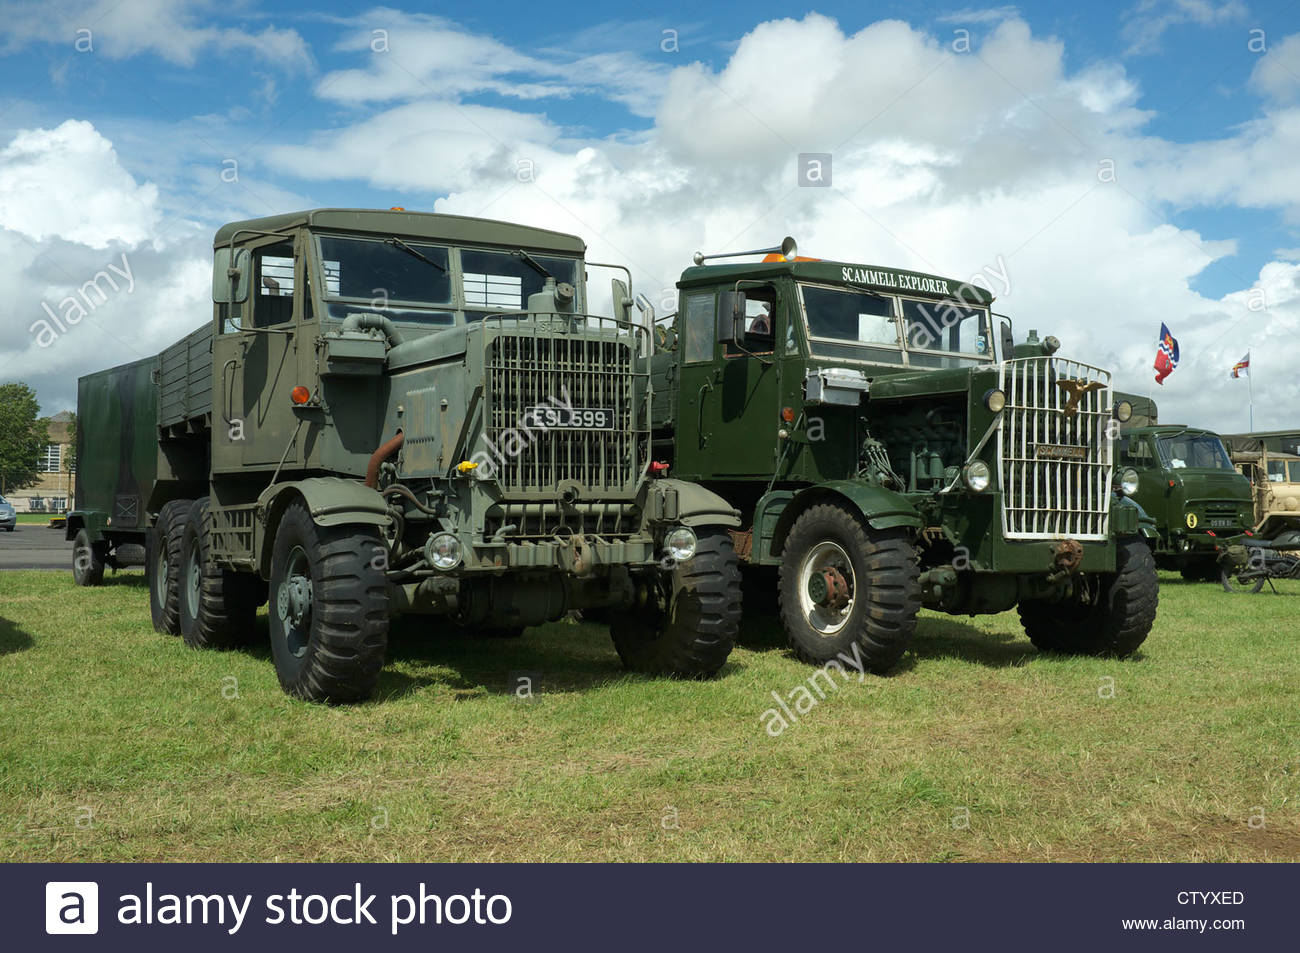 Scammell Explorer military recovery vehicles, at the Gloucestershire Steam & Vintage Extravaganza, UK. - Stock Image